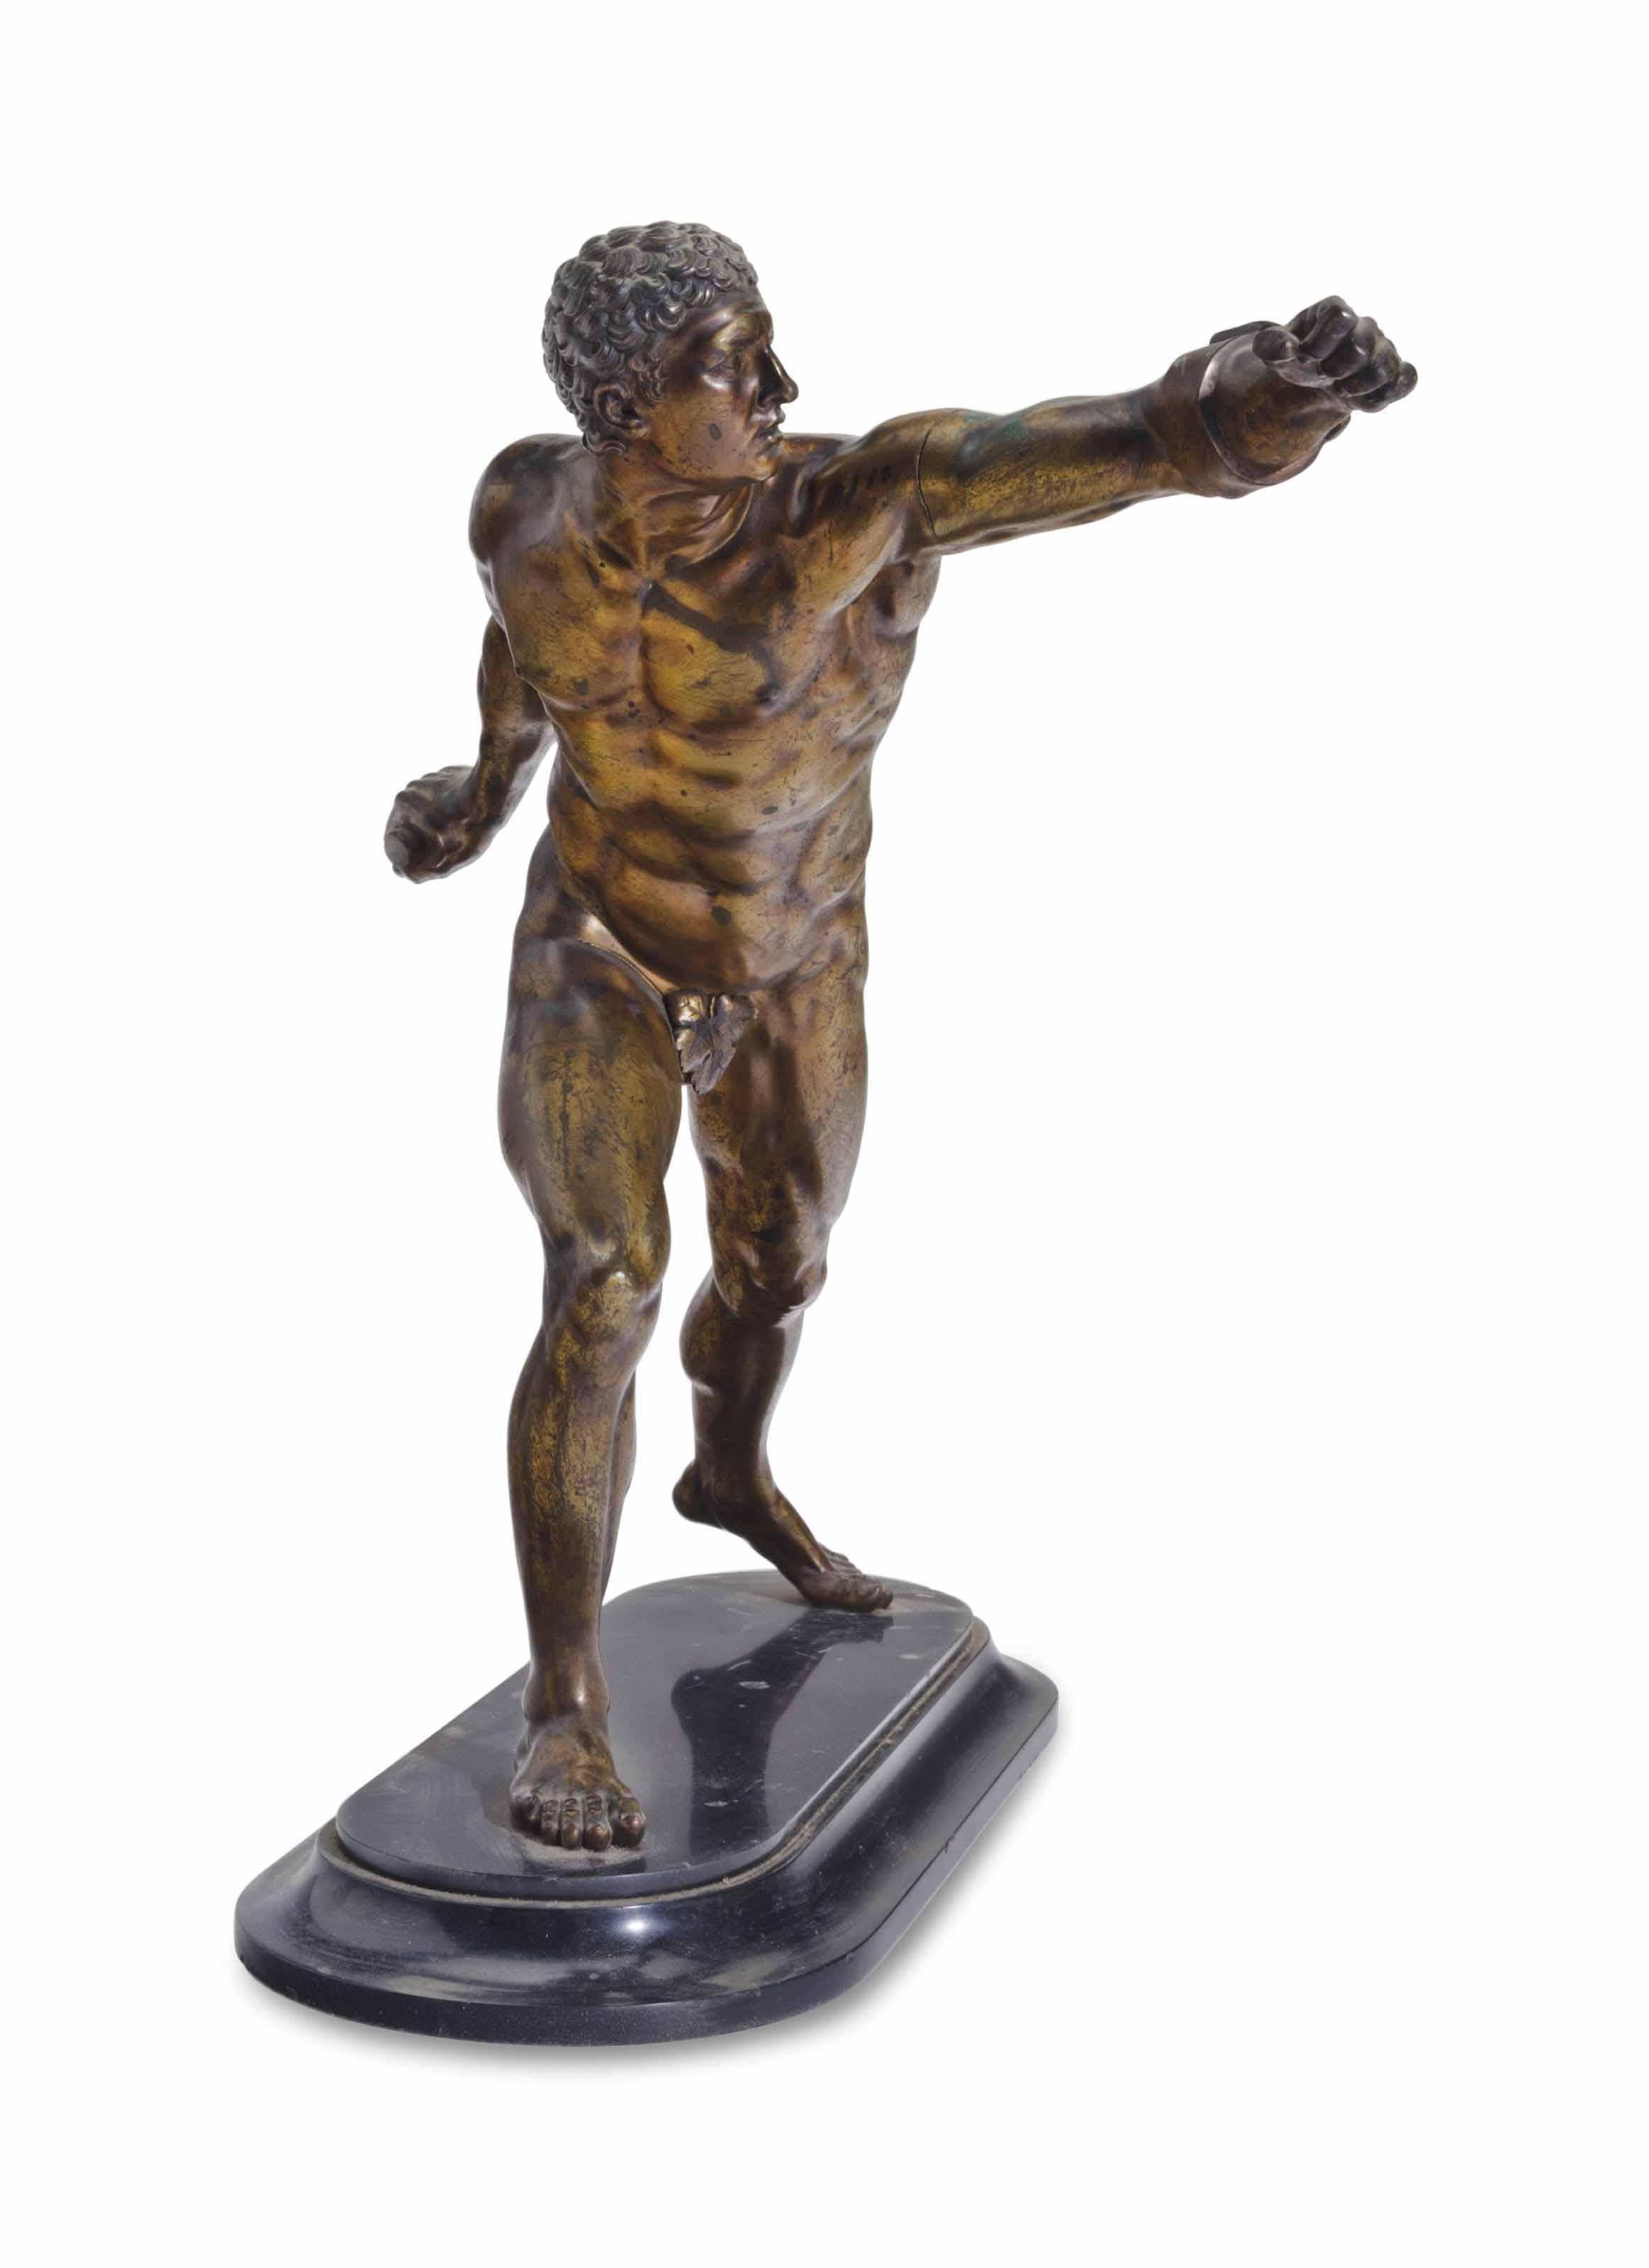 A PATINATED METAL FIGURE OF TH